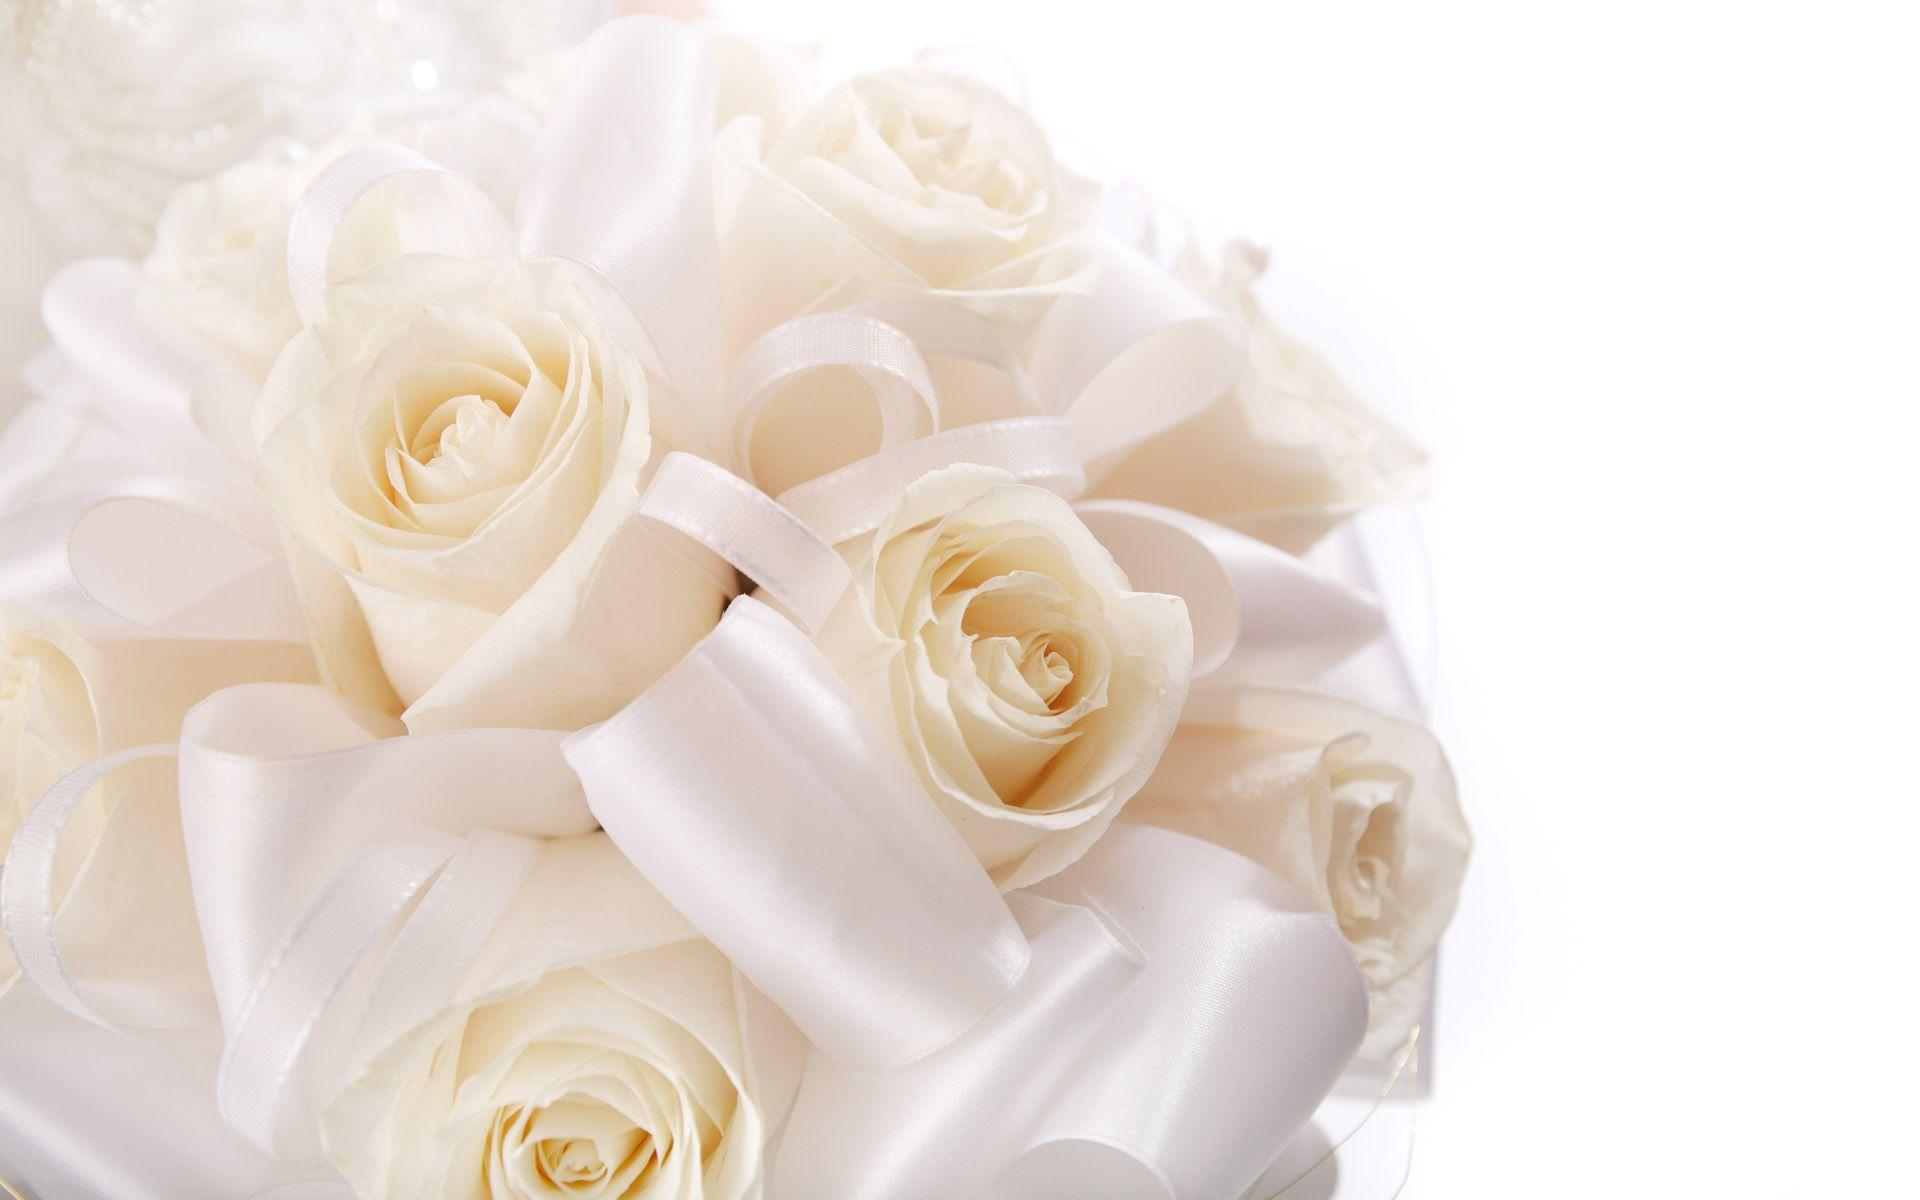 white wedding bouquet wallpaper - photo #10